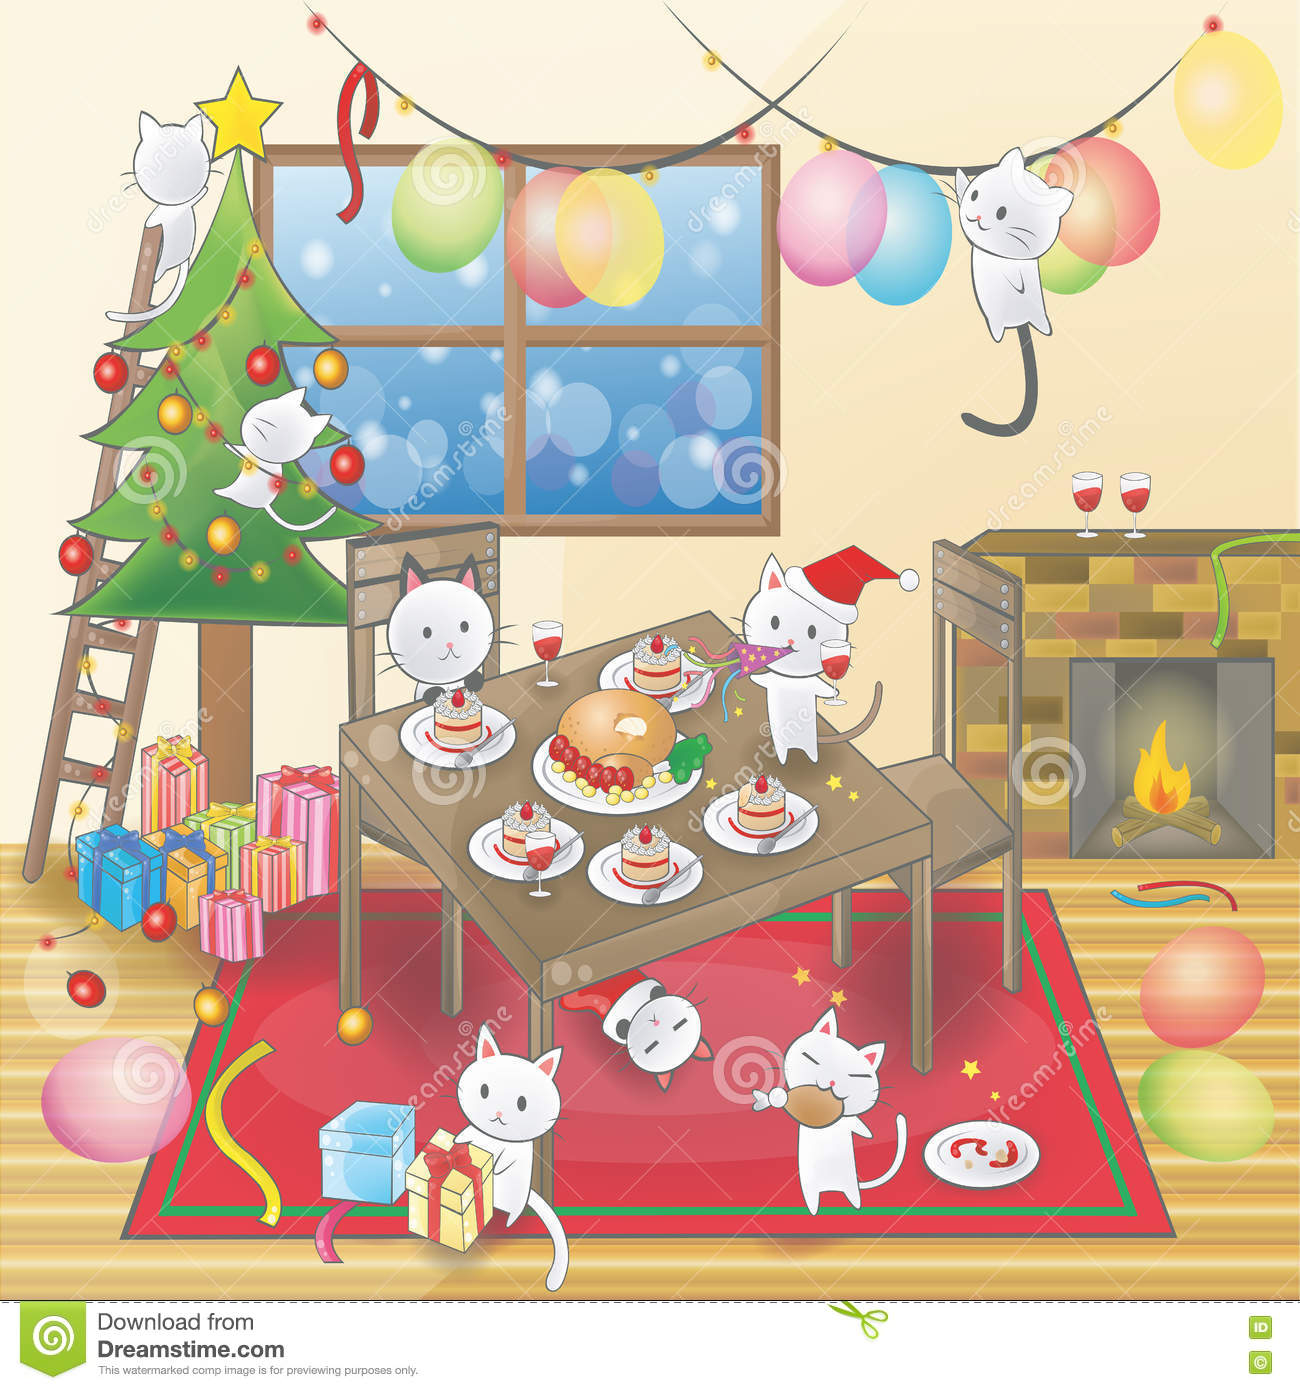 Cute Christmas Party.Cute Cartoon Of Little Cats Are Celebrating A Christmas